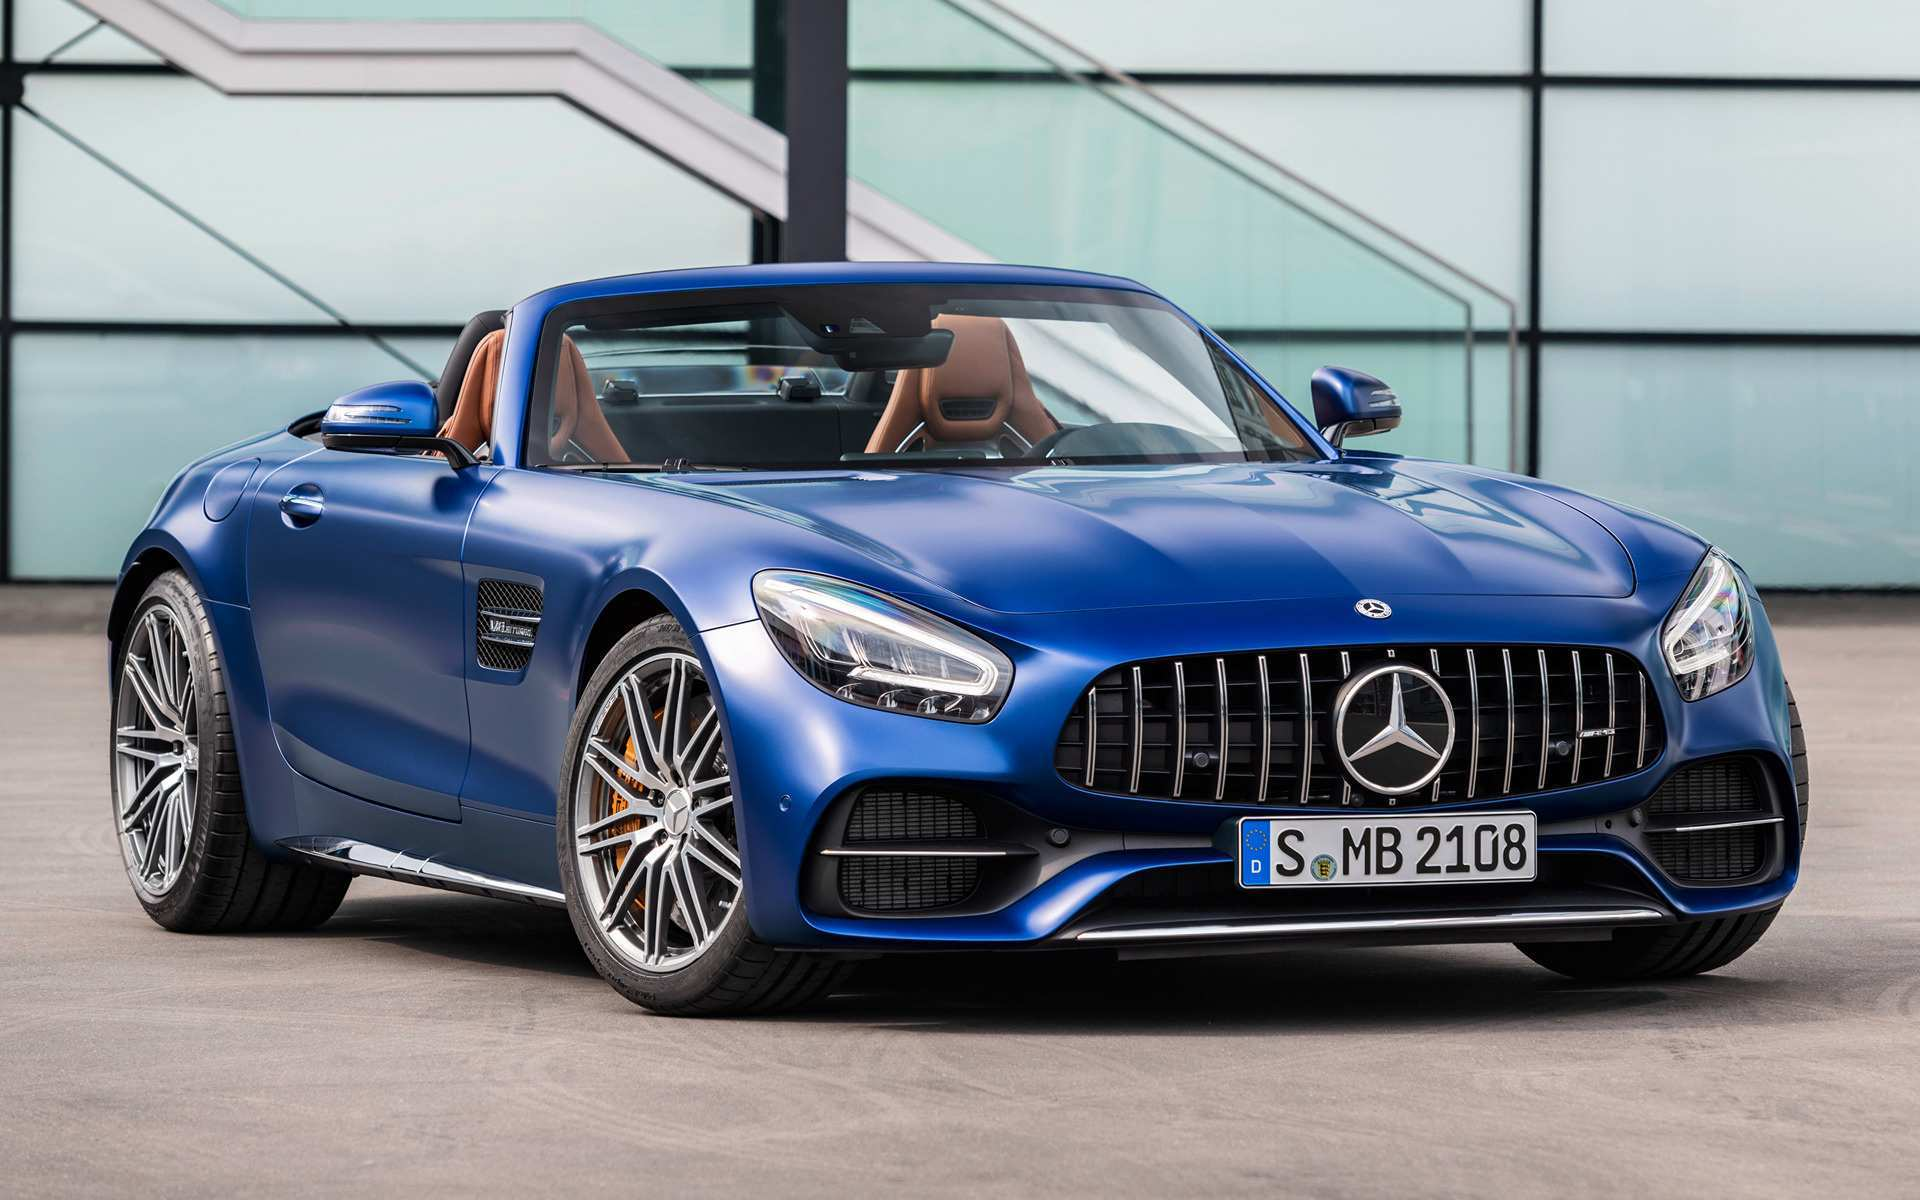 14 New Mercedes Gt 2019 Images